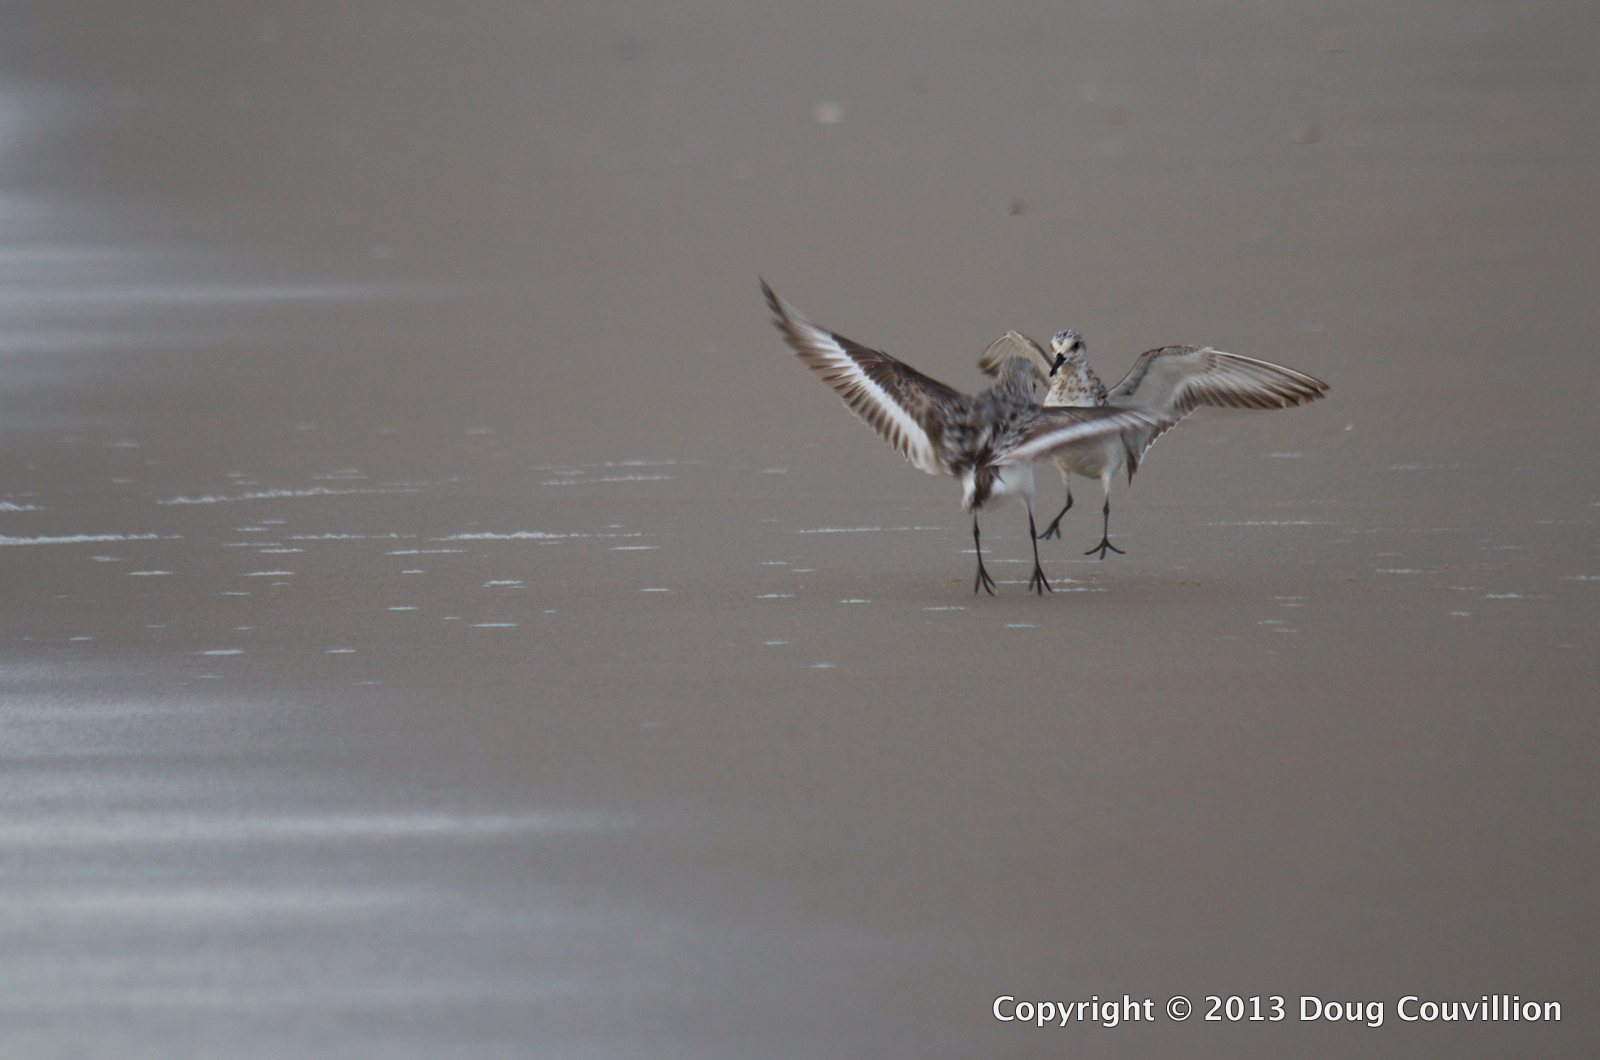 photography of two sanderlings on the beach in Corolla, NC